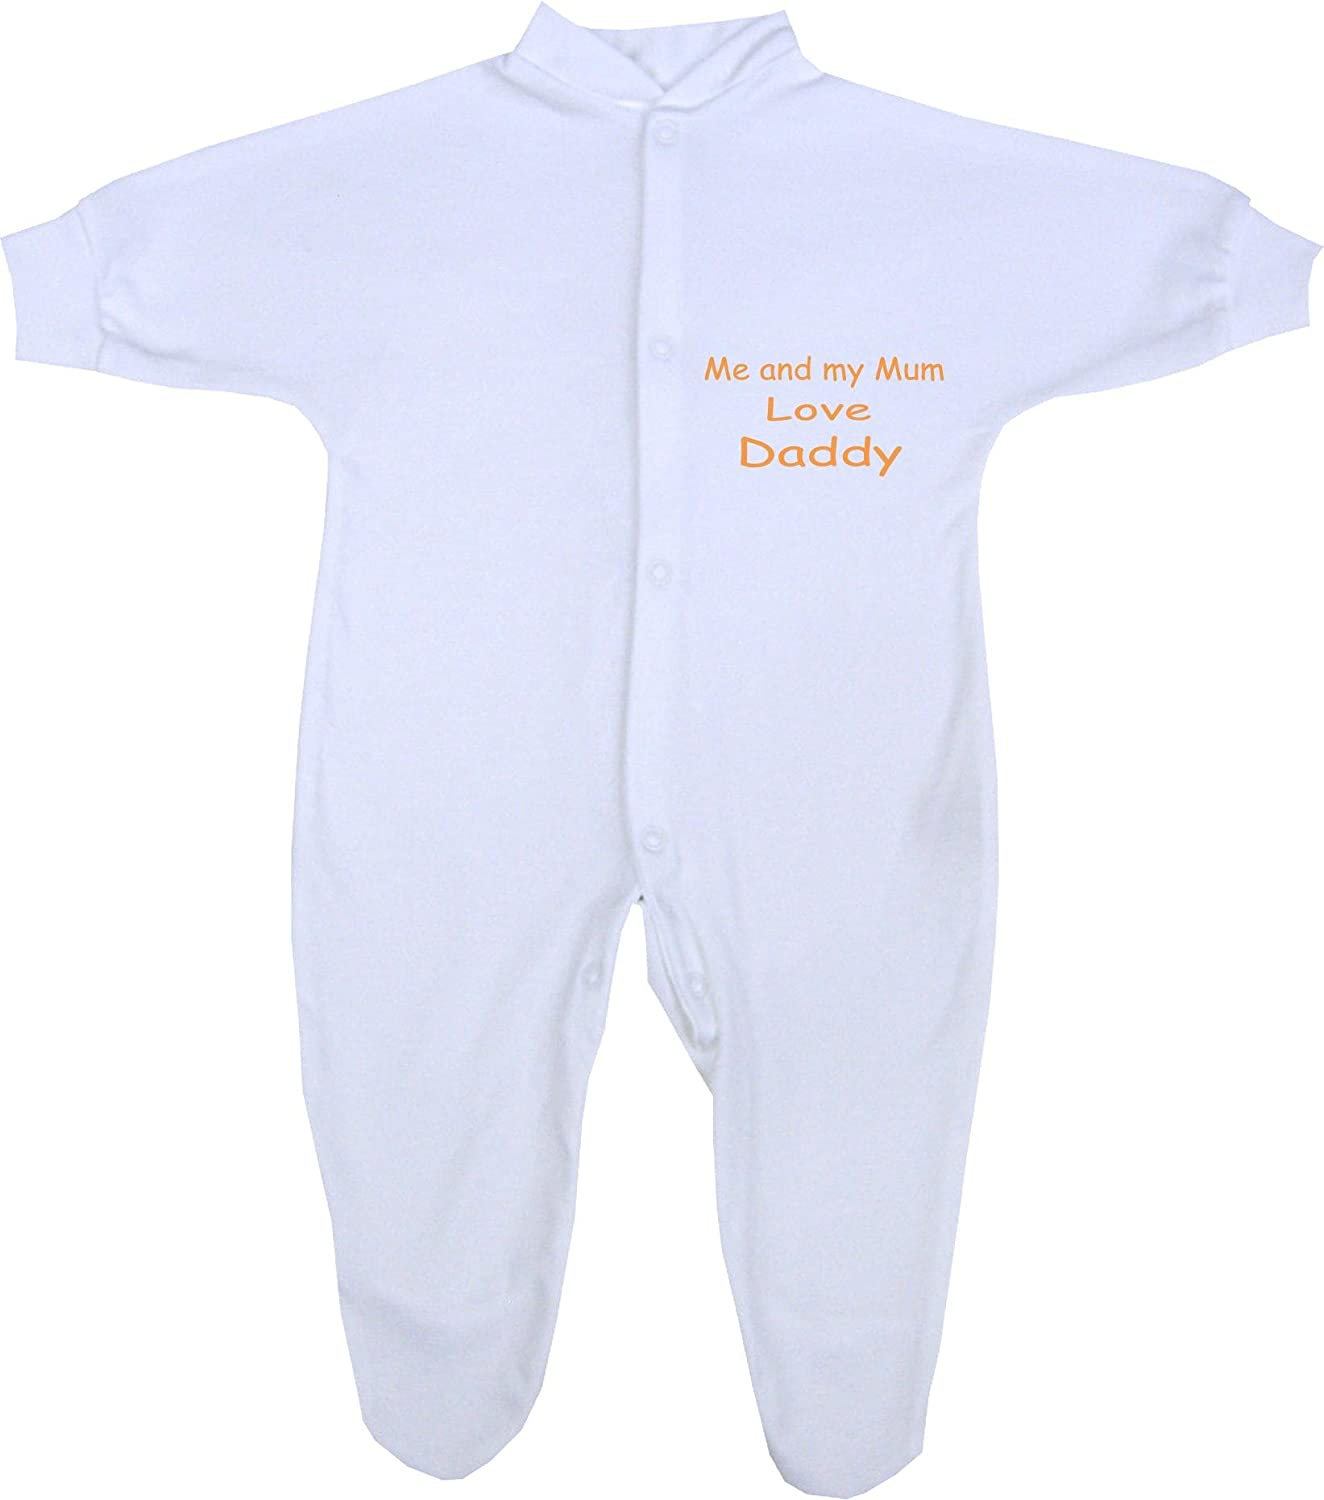 Me and my Mum Love Daddy Baby Sleepsuit Babygro Newborn 12 months